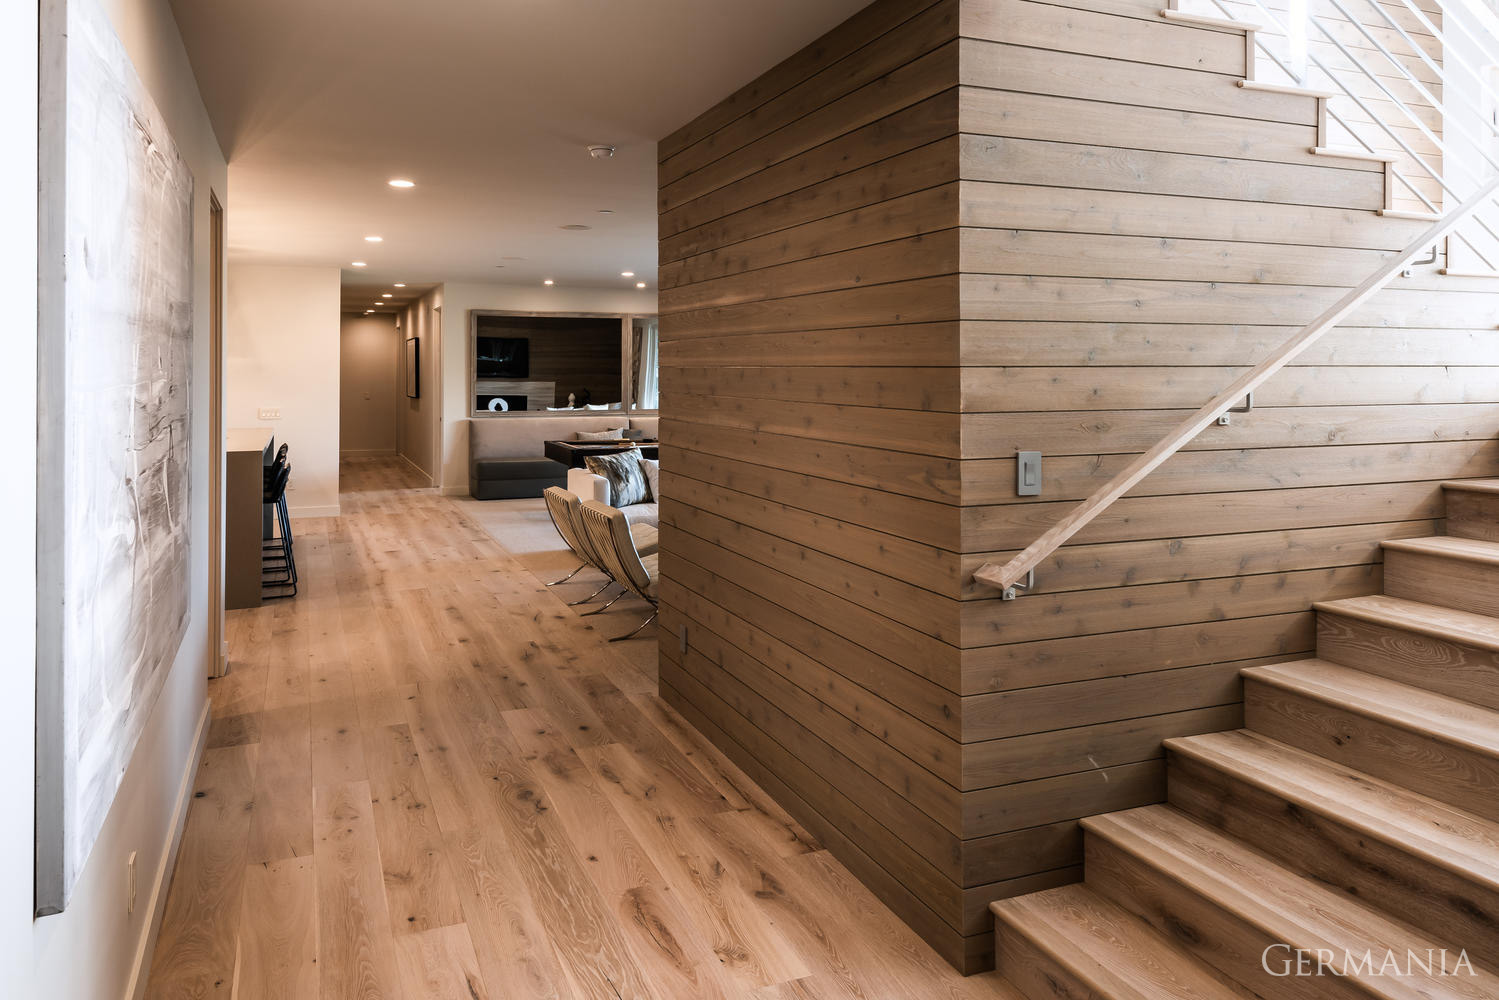 Germania can execute the design of your dream home with gorgeous natural wood flooring and modern paneling.